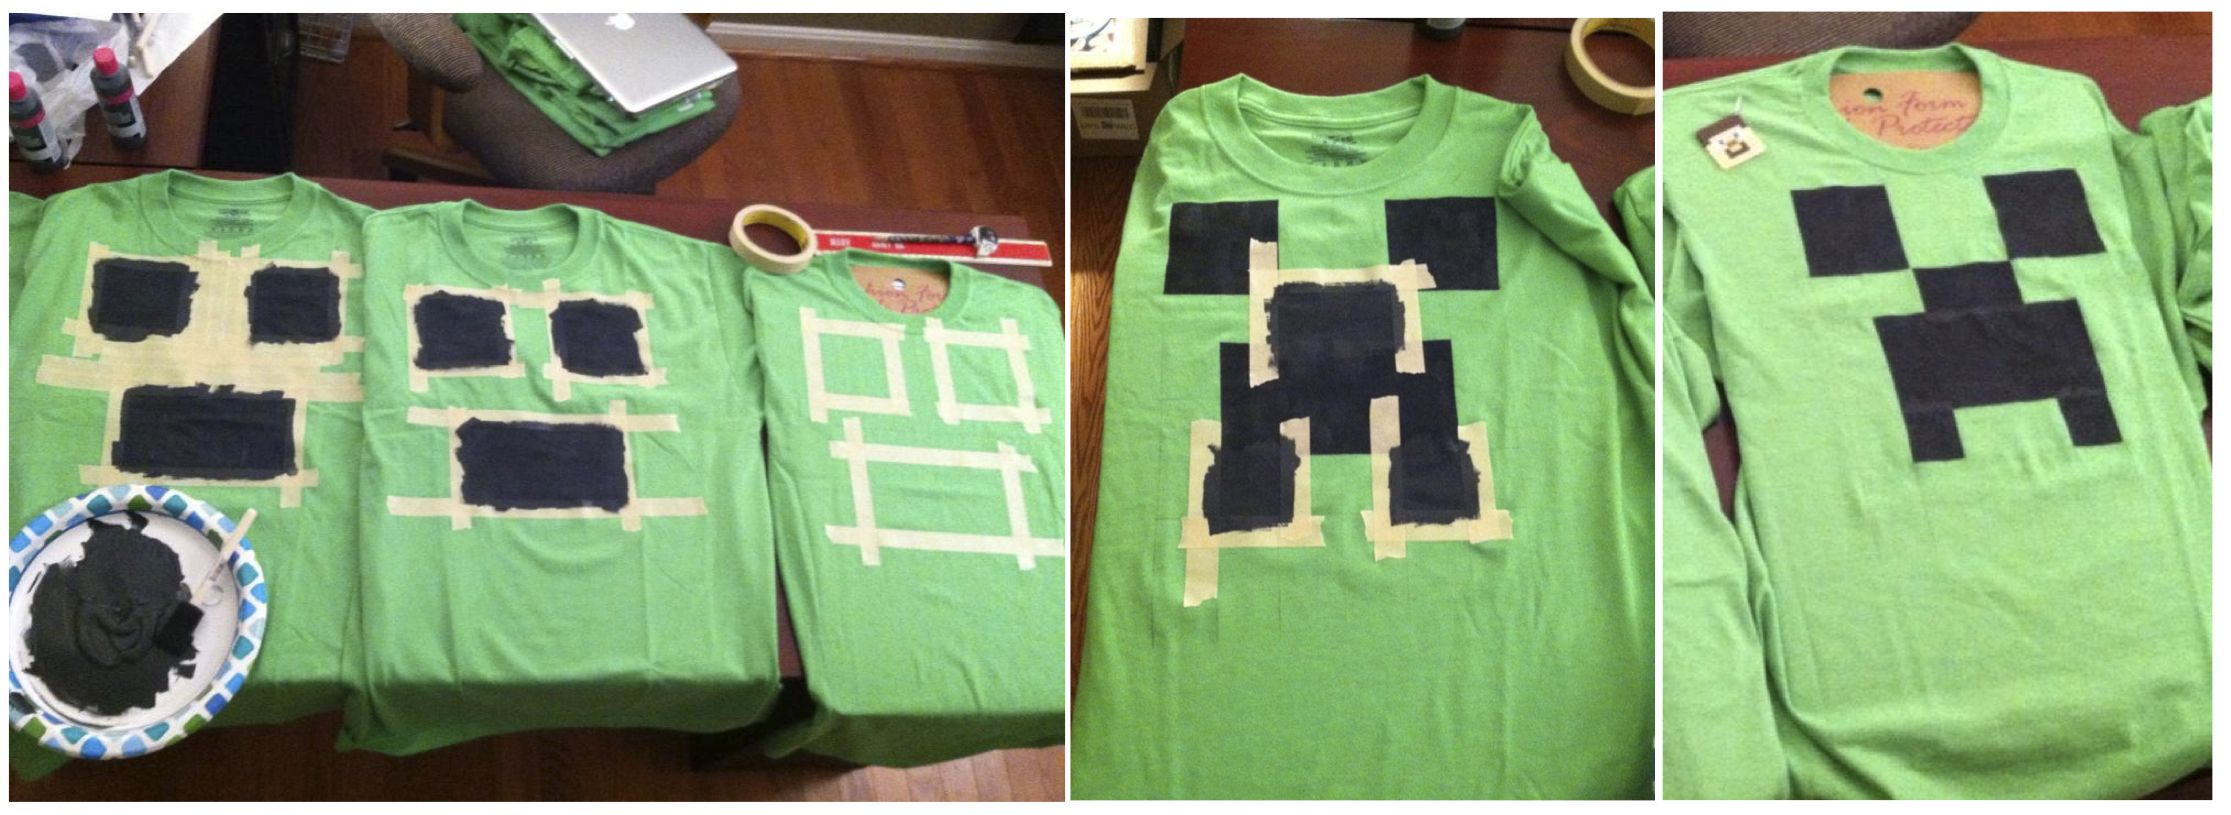 Super Easy Minecraft Creeper T Shirts Made As Party Favors